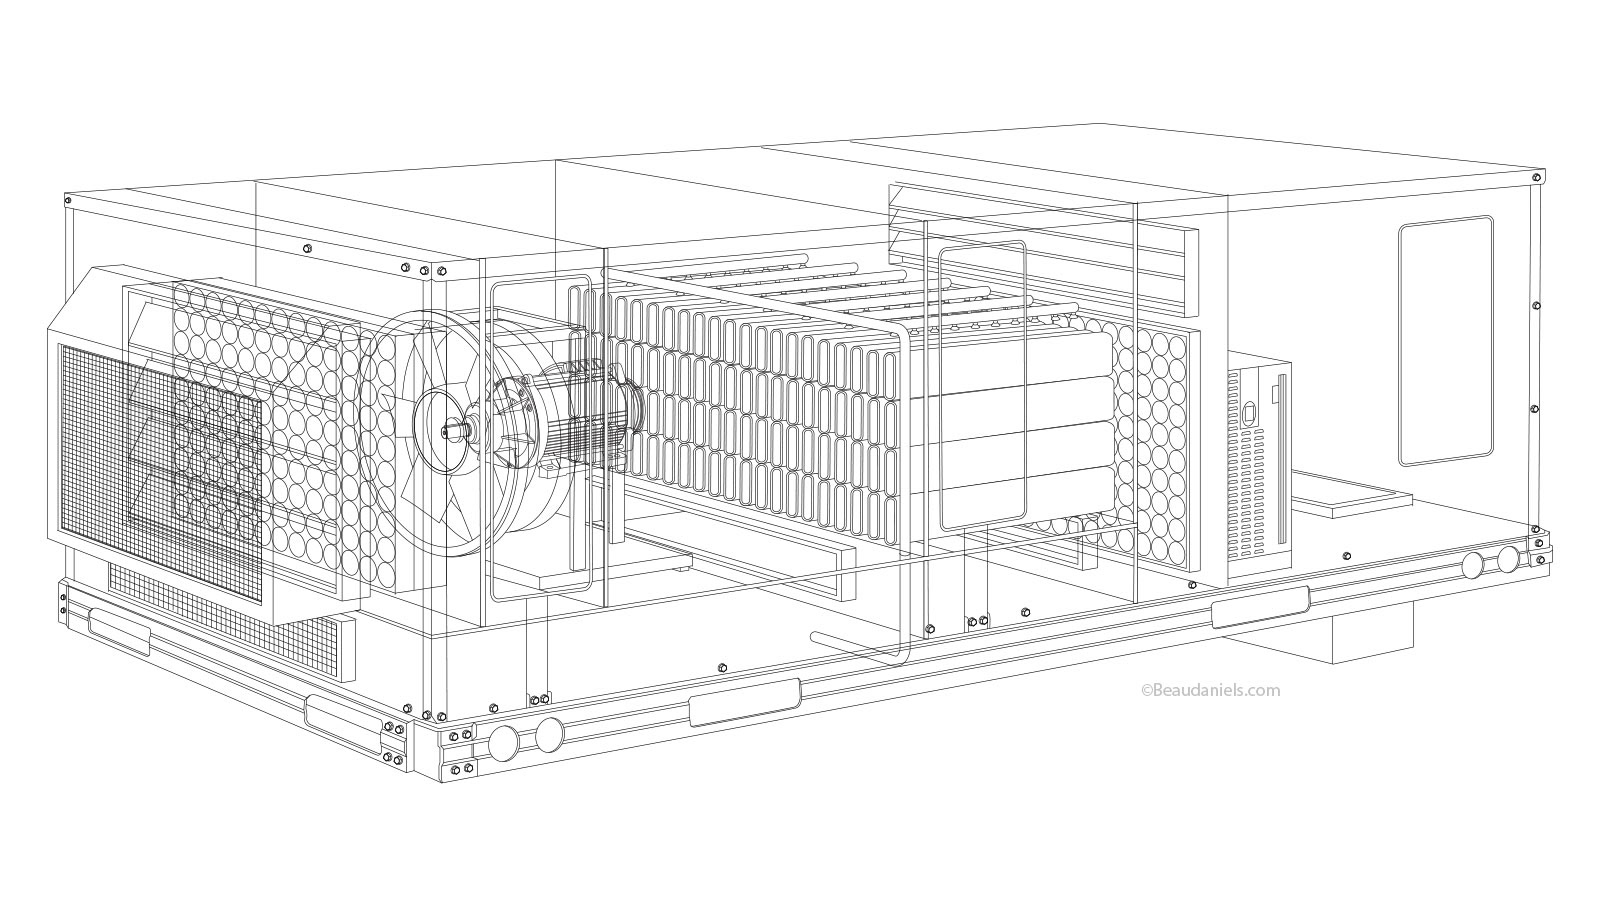 Technical Illustration Beau And Alan Daniels Hvac Animation Drawing For Line Art